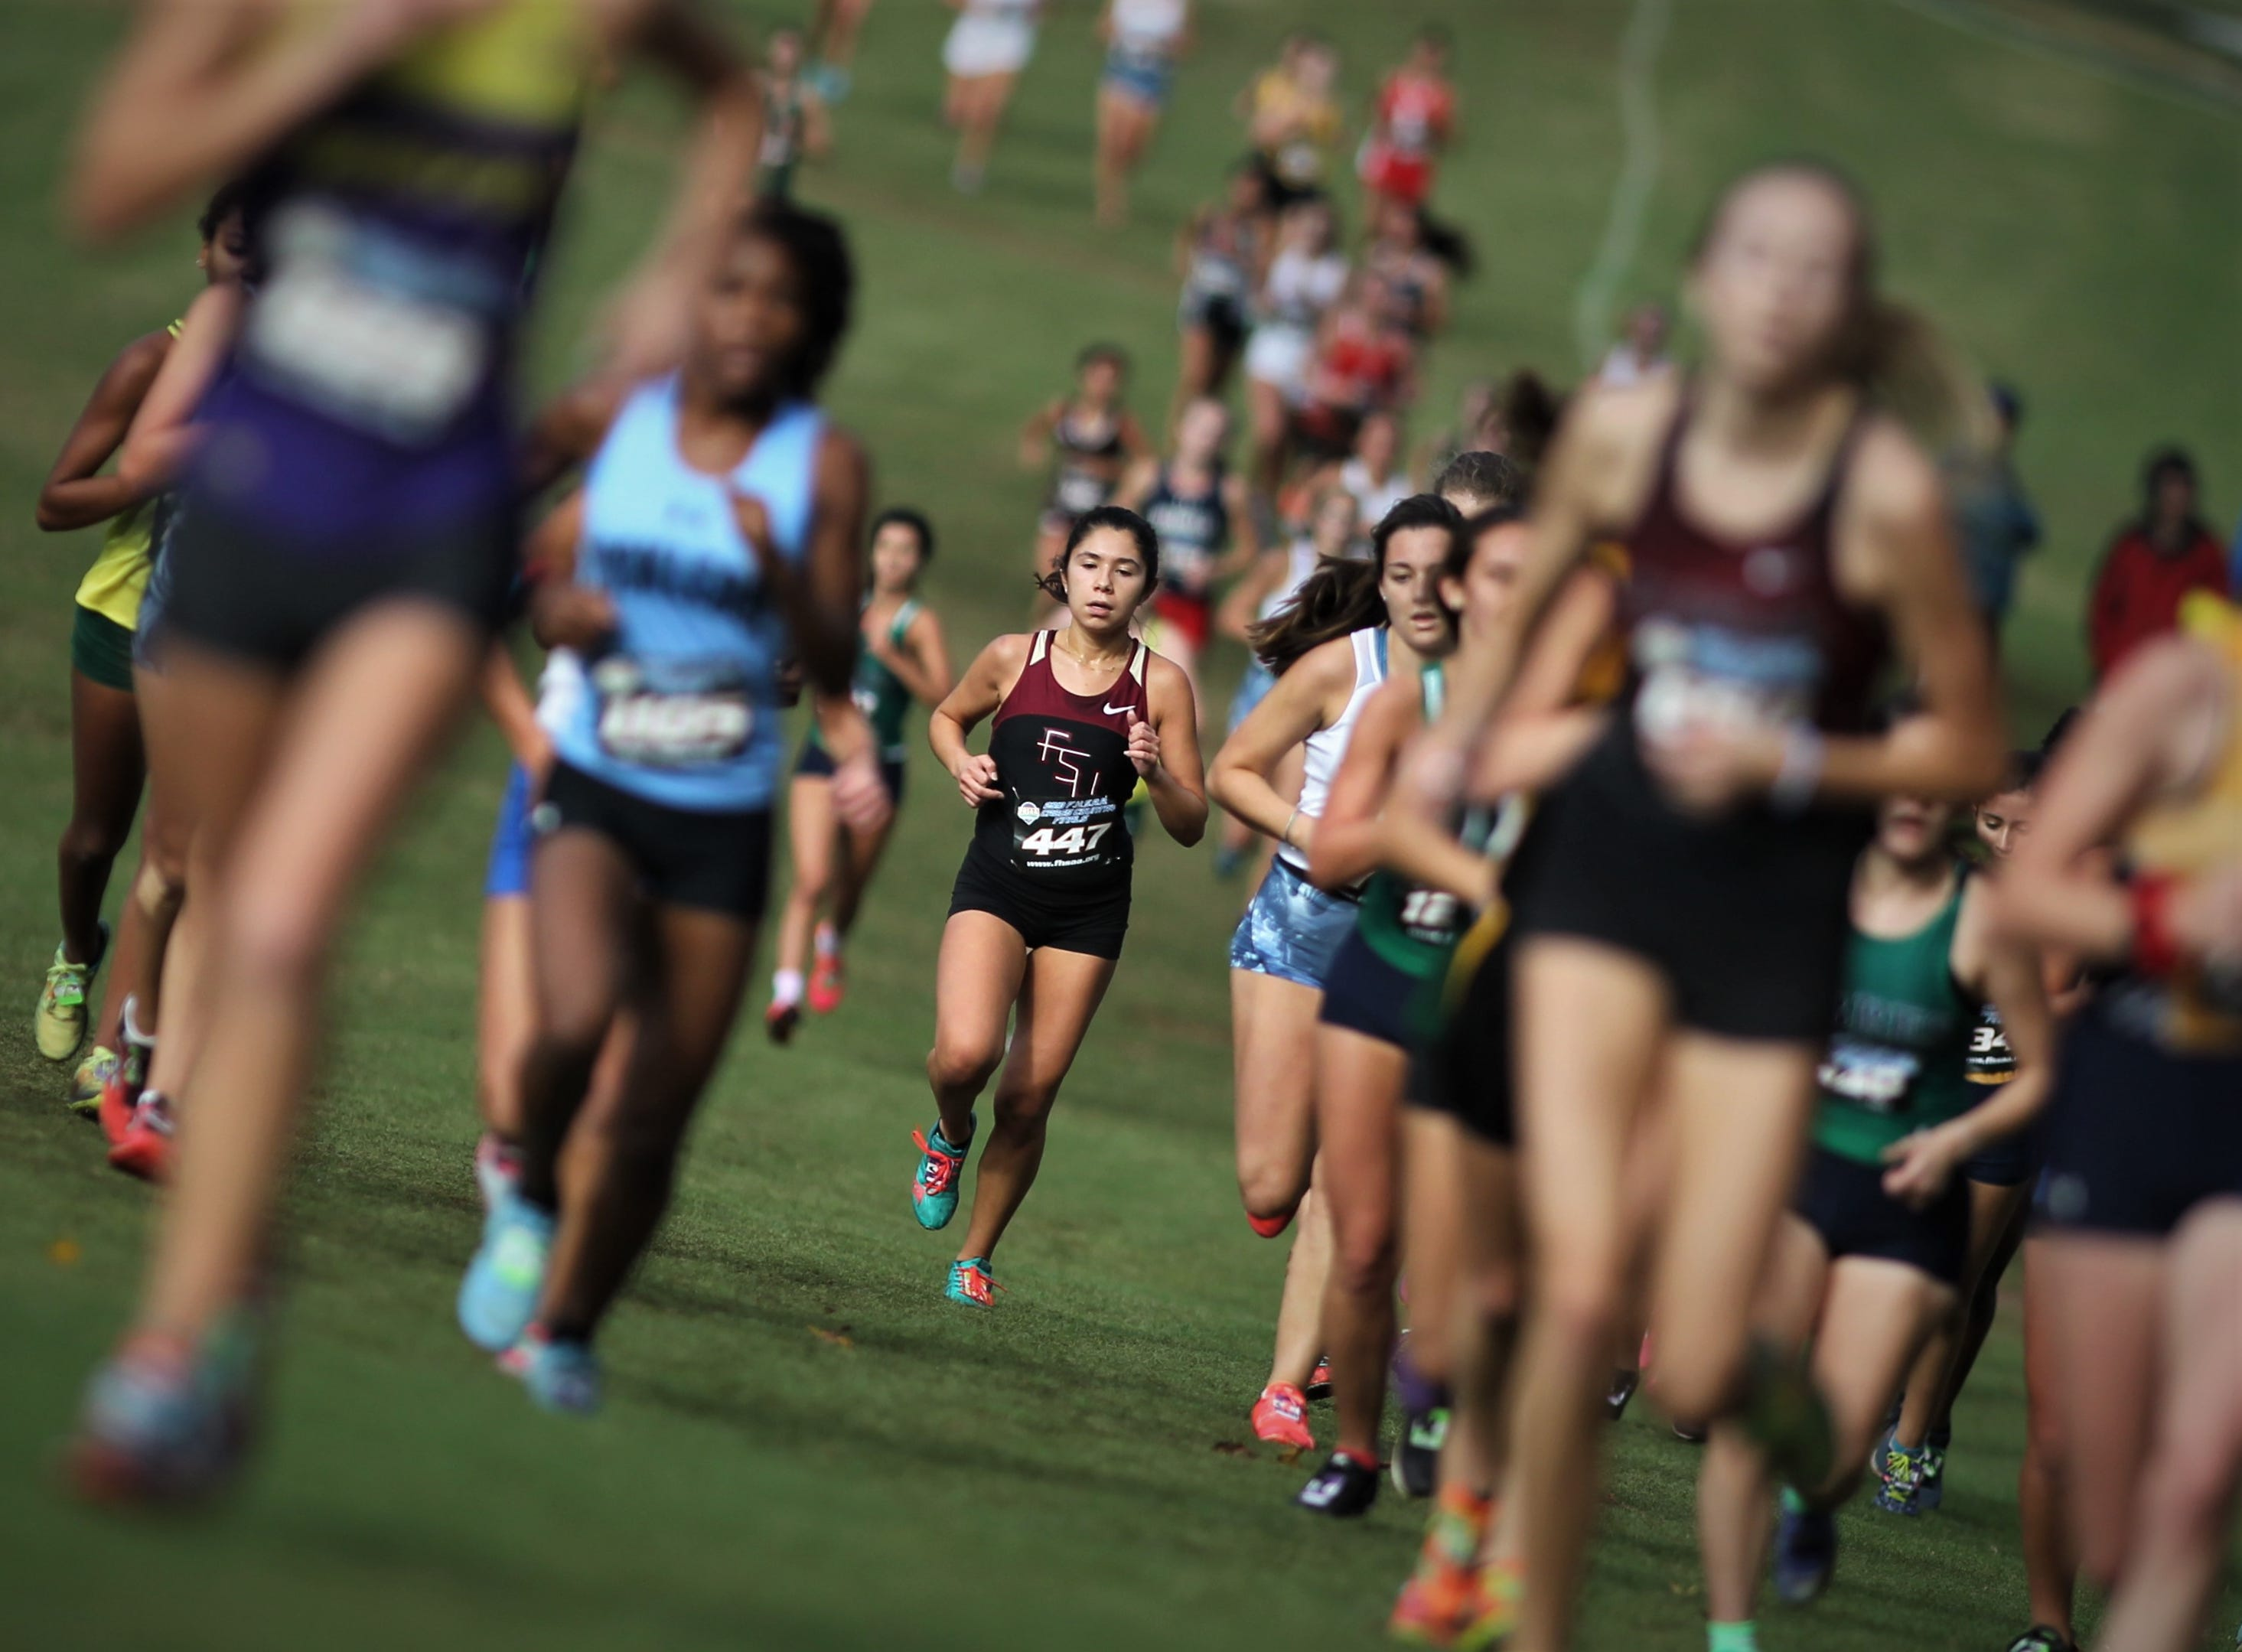 Florida High senior Summer Williams runs in a pack of runners during an FHSAA State Championships race at Apalachee Regional Park on Nov. 10, 2018.